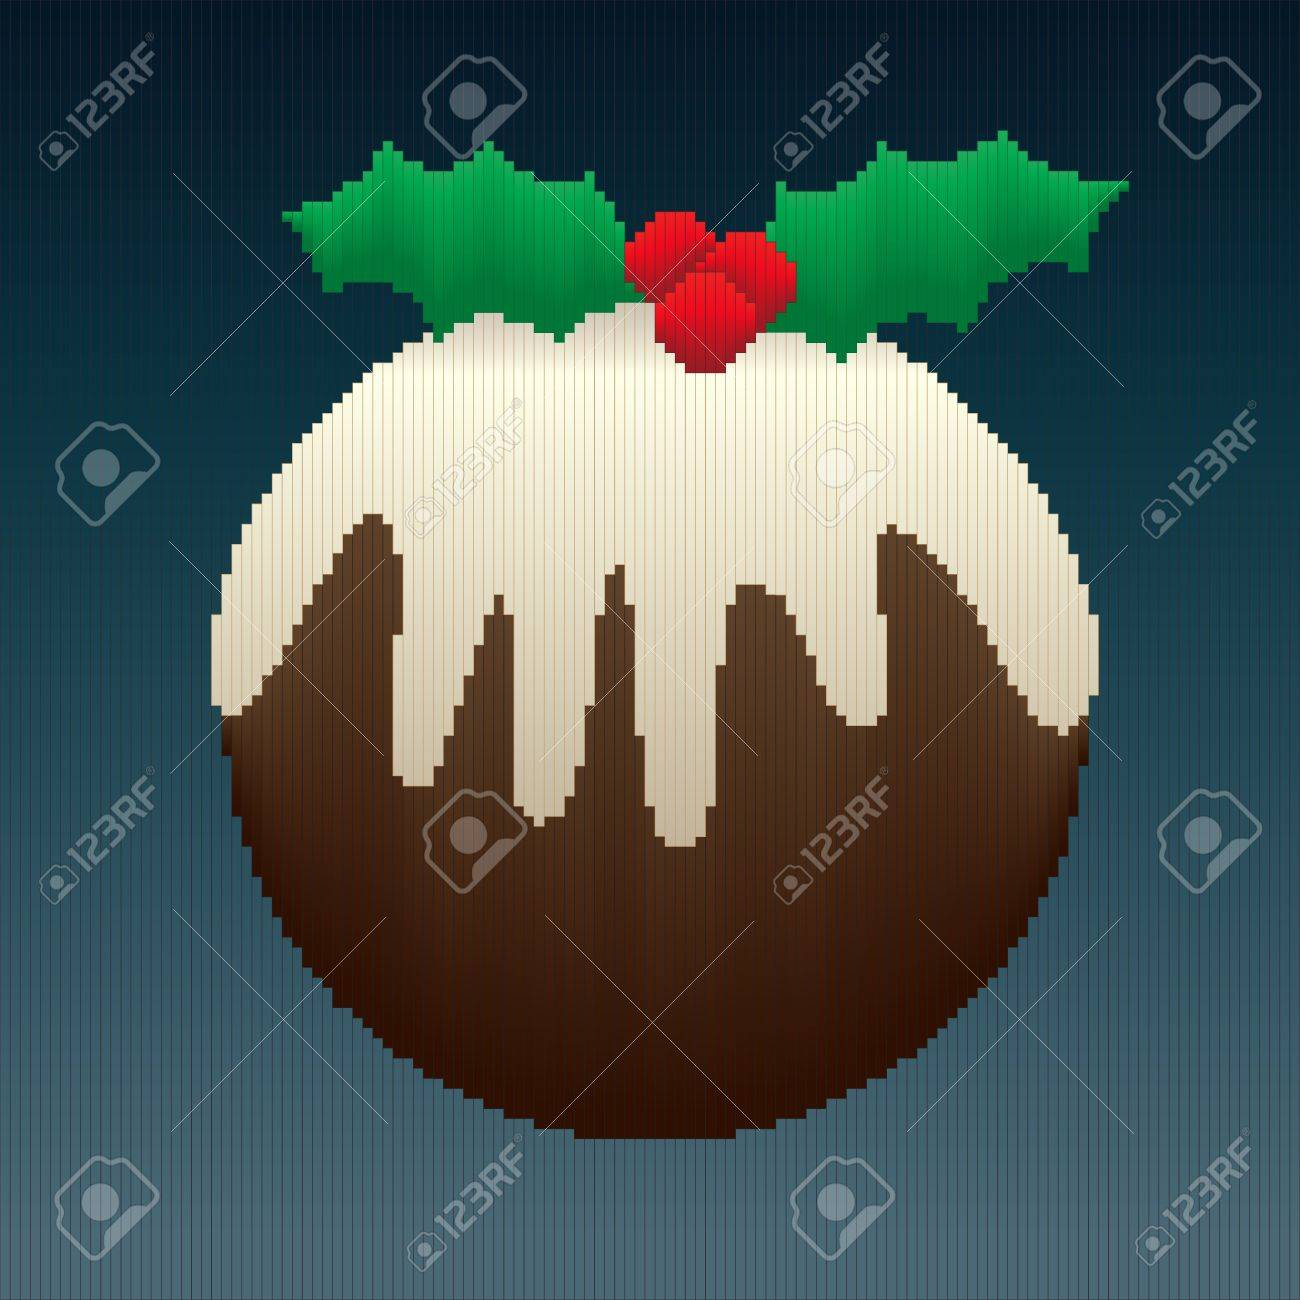 A Christmas pudding design made entirely of stripes in coloured gradients giving an 8-bit look to the image. Stock Vector - 15408234